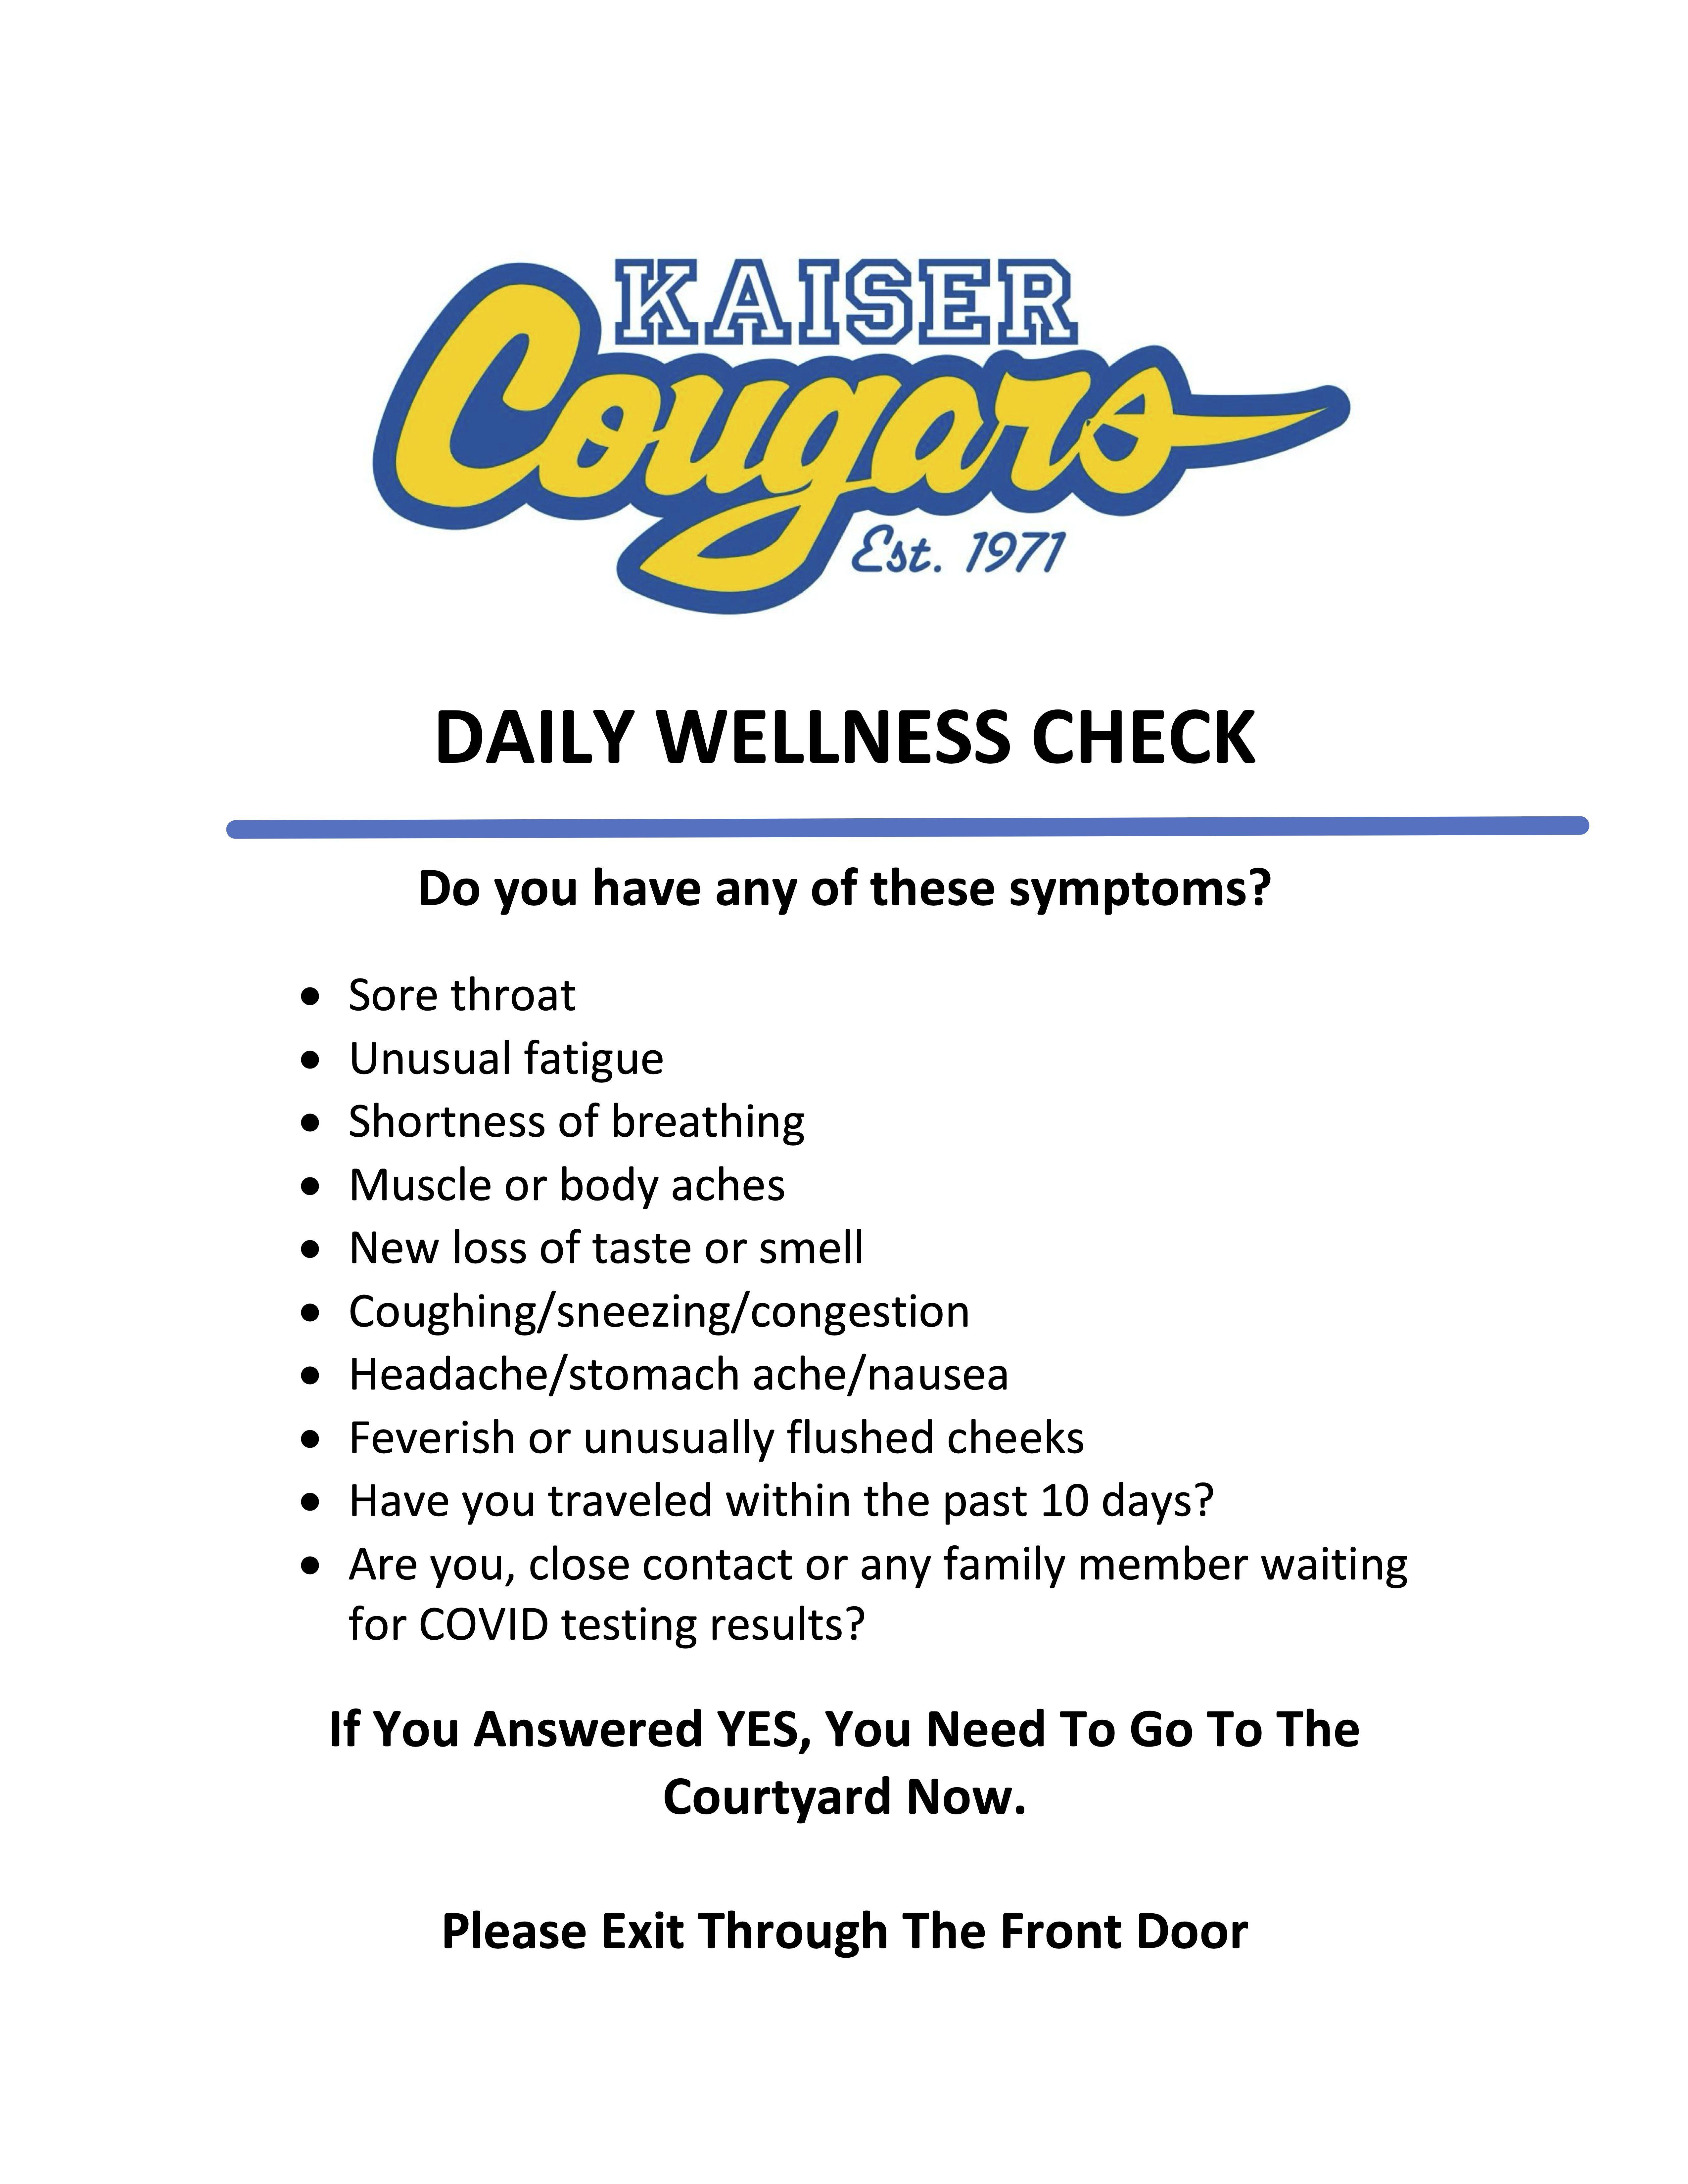 Daily Wellness Check Poster